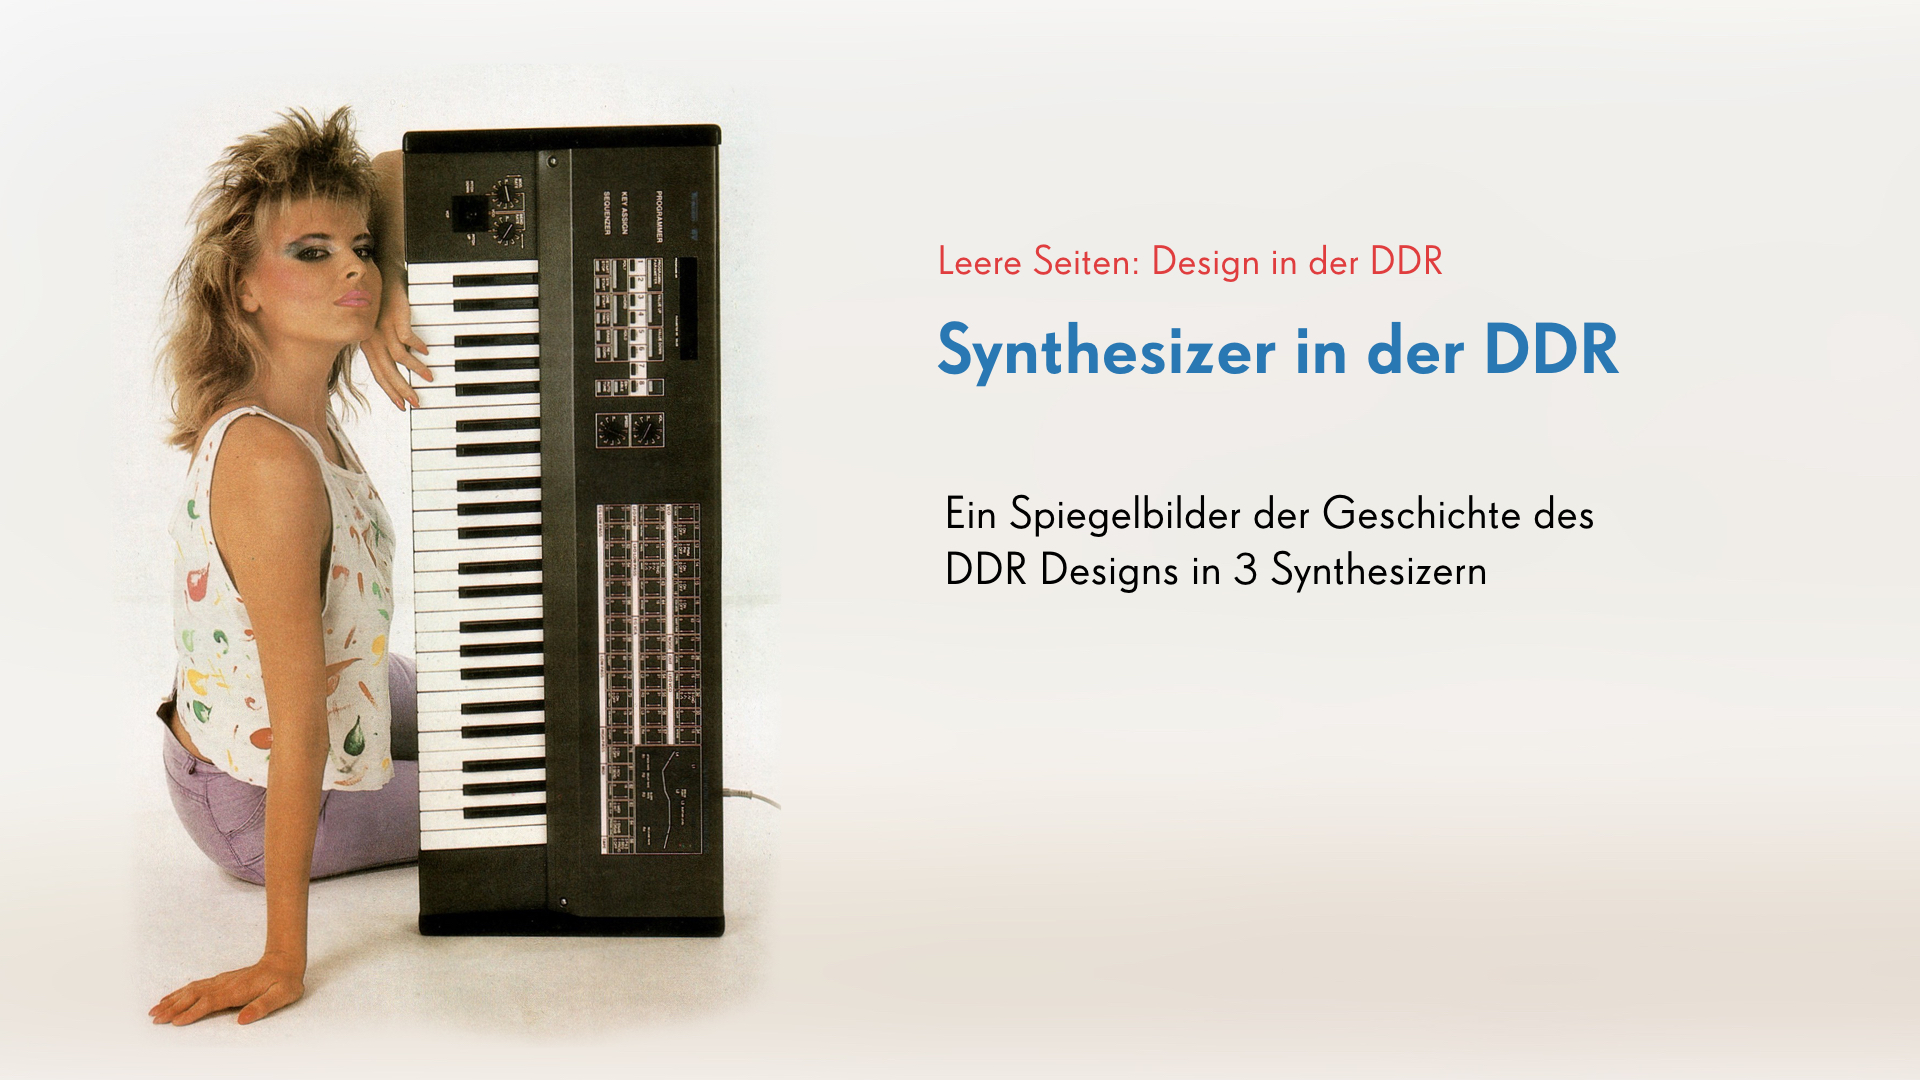 Synthesizer in der DDR